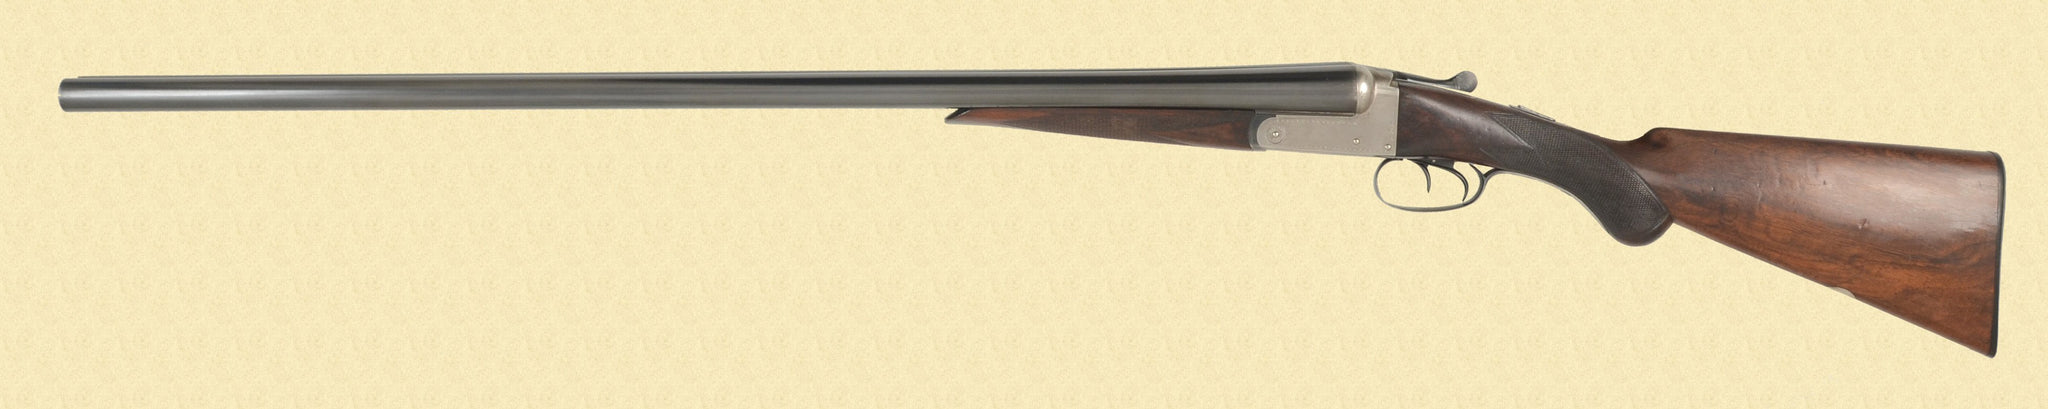 FRED WILLIAMS DOUBLE BARREL SHOTGUN